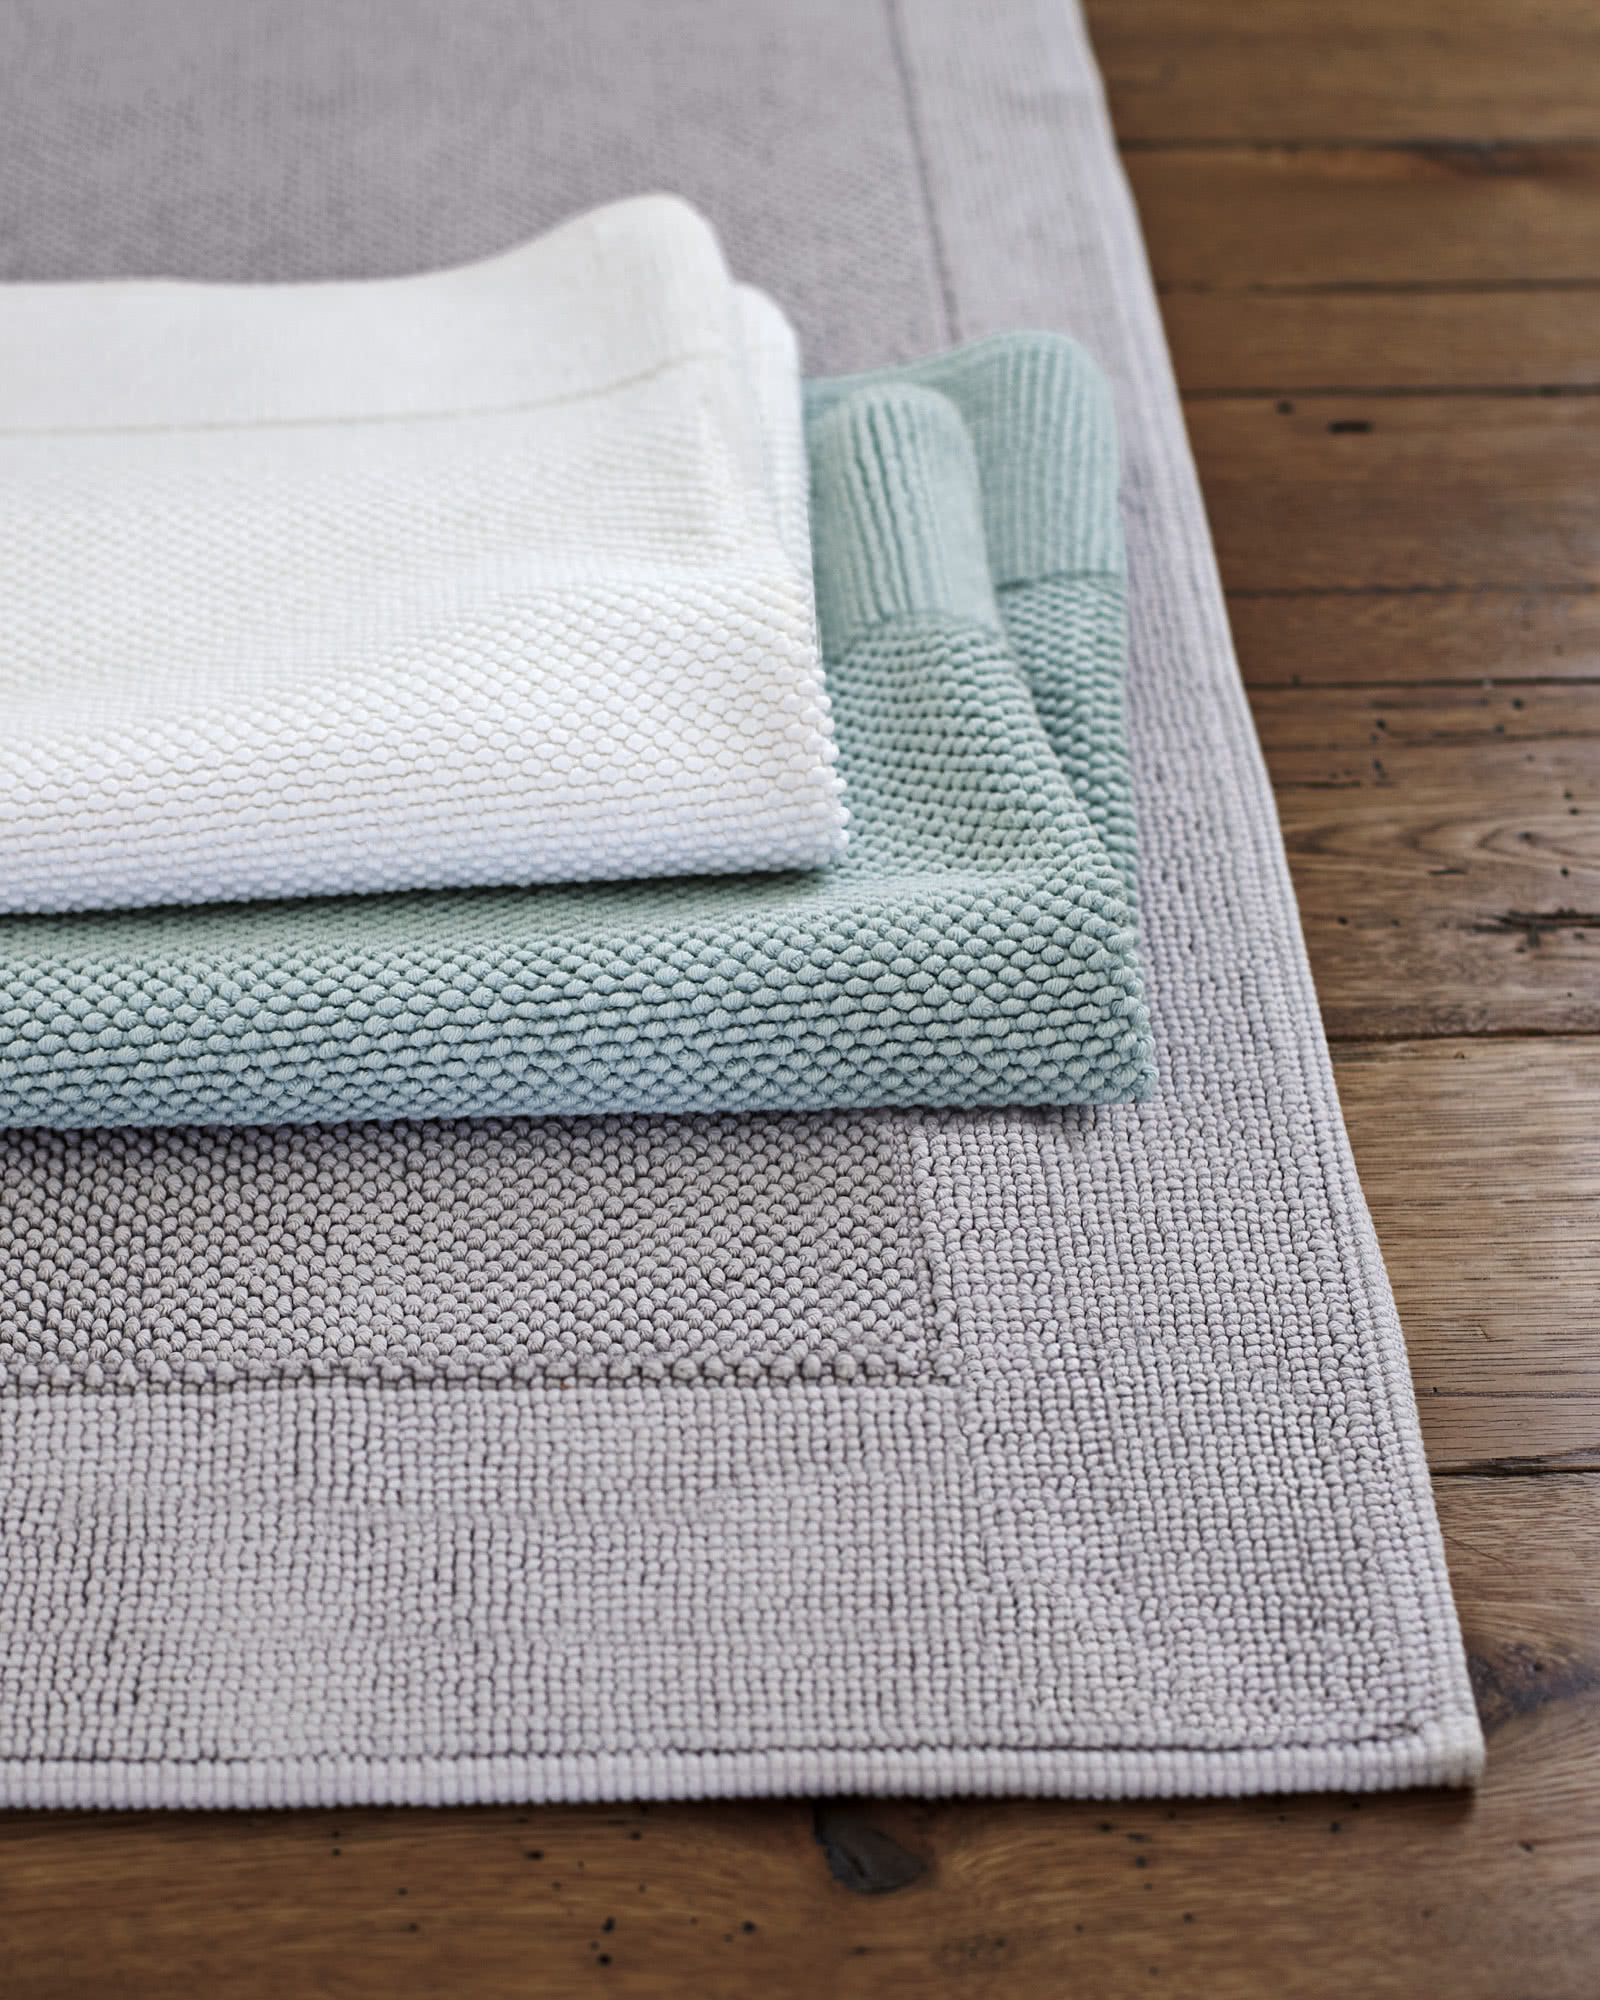 Textured Cotton Bath Mat